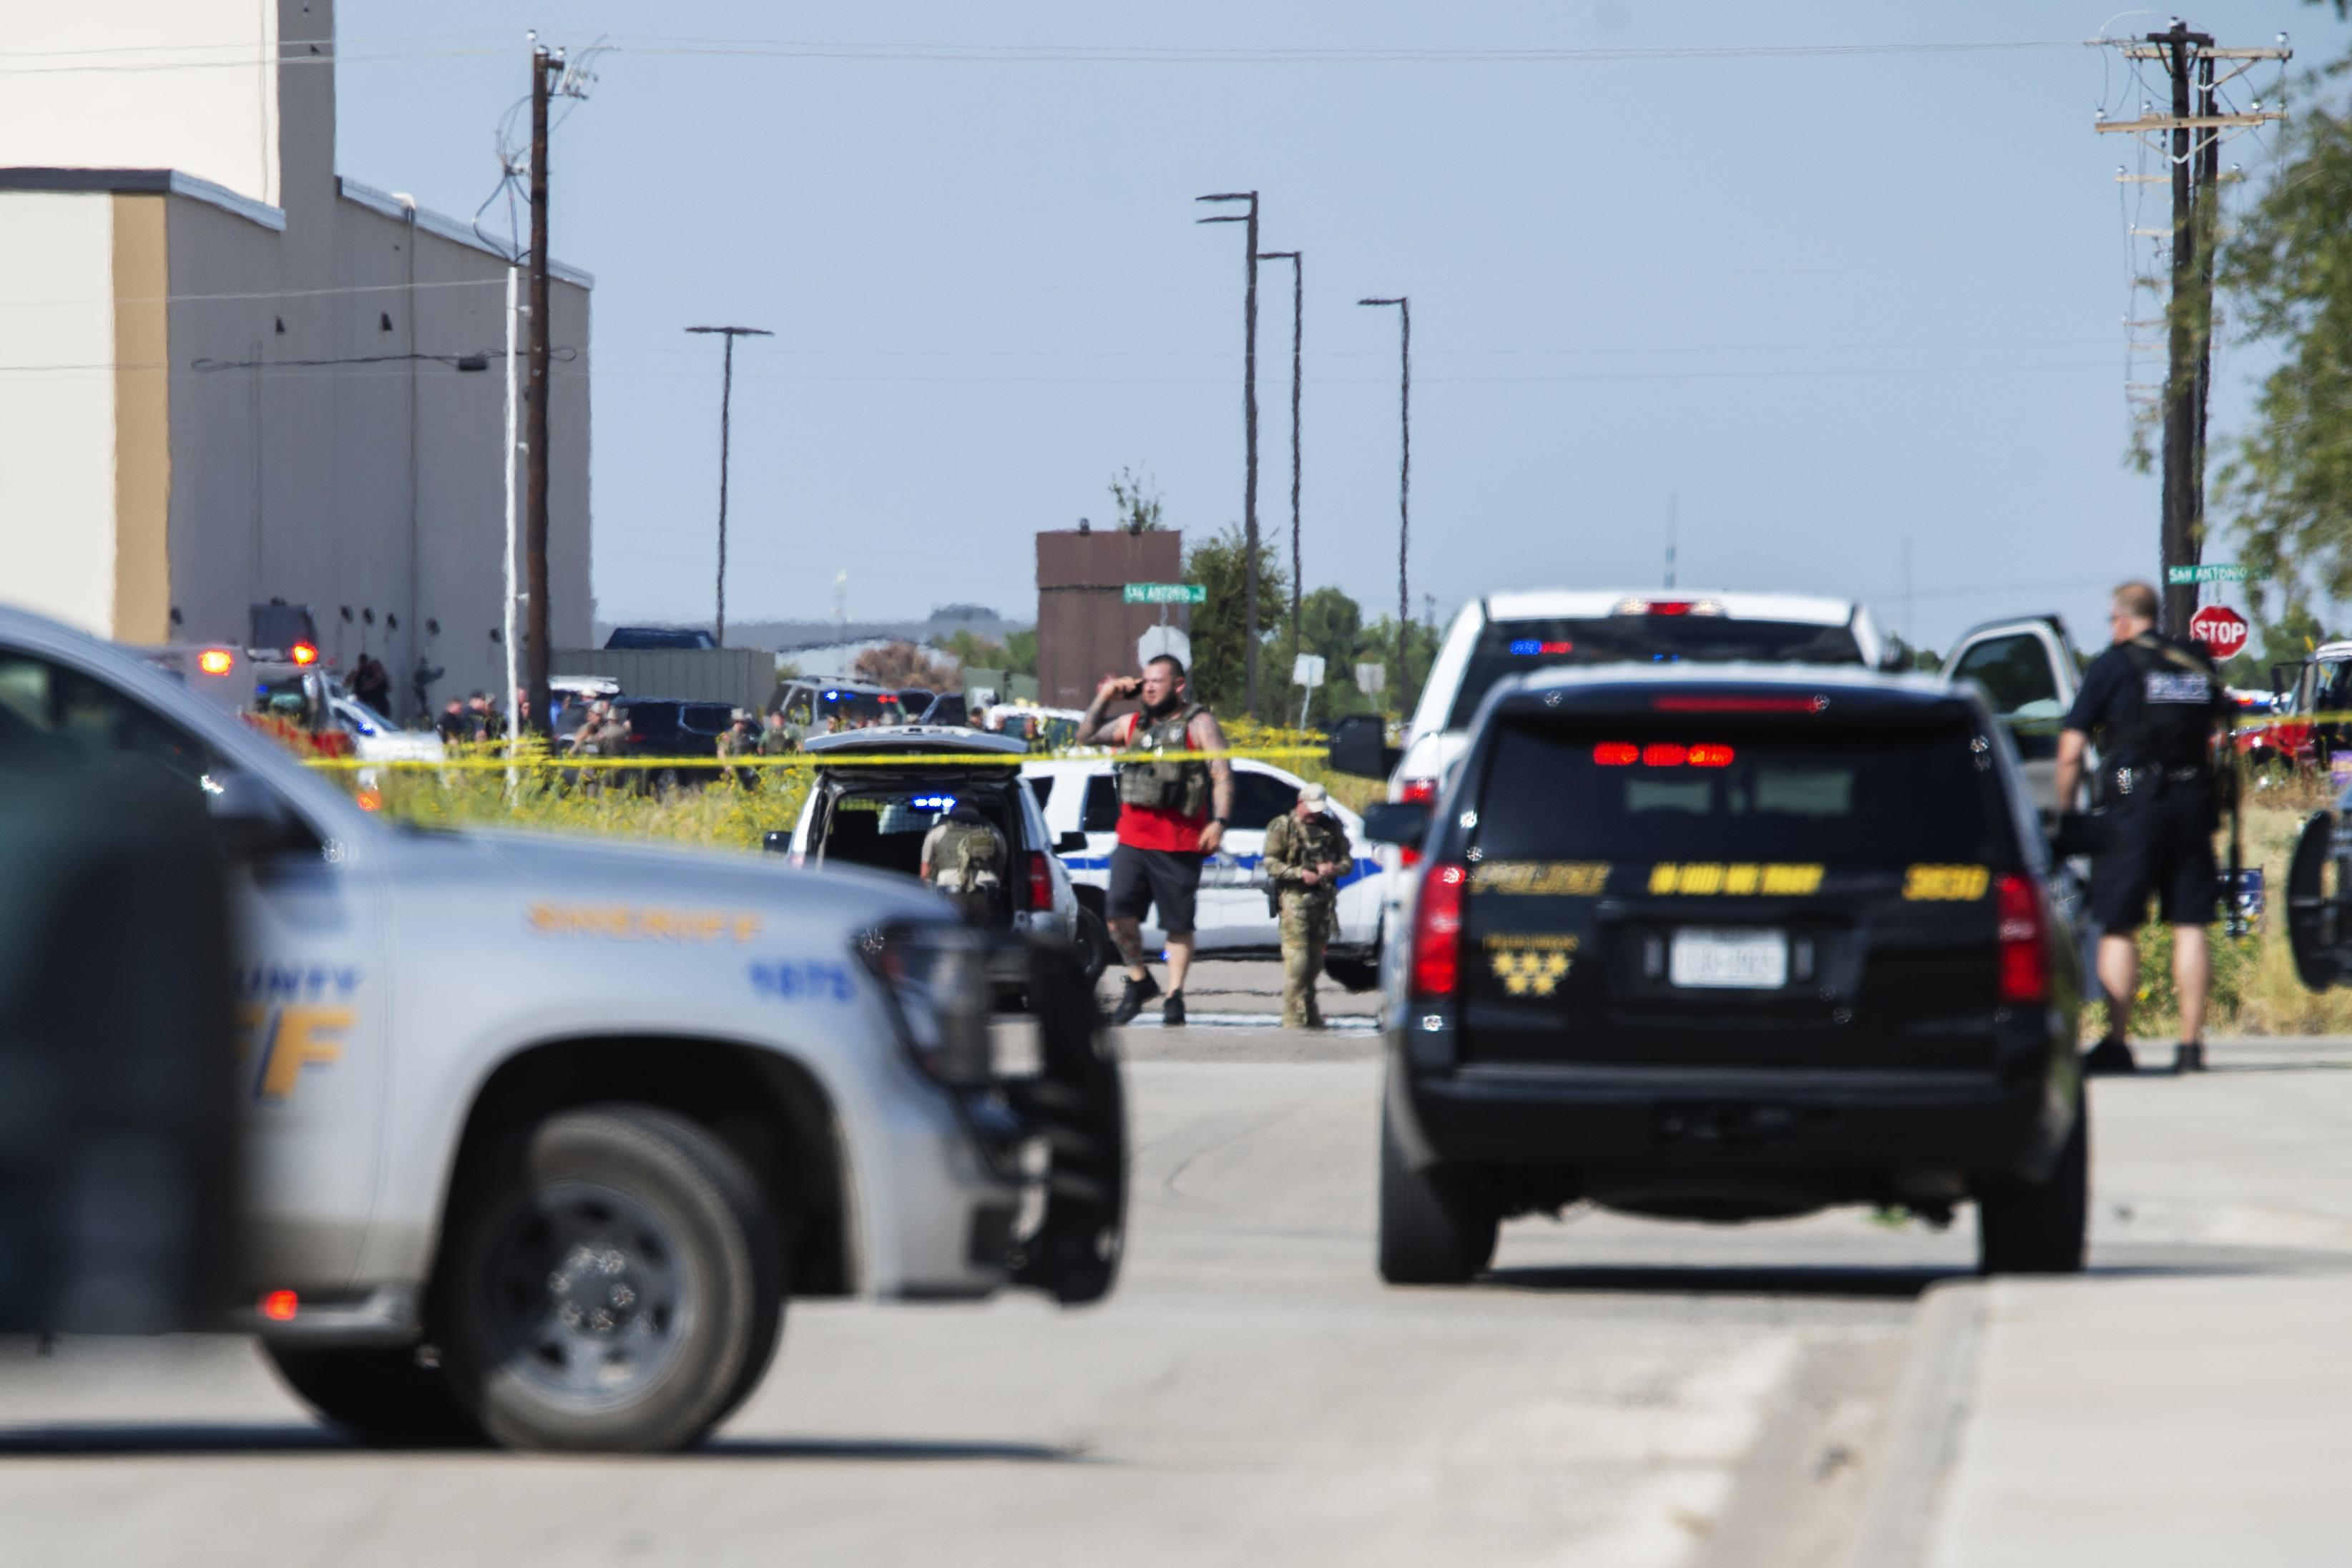 At least 5 dead in West Texas shooting after traffic stop